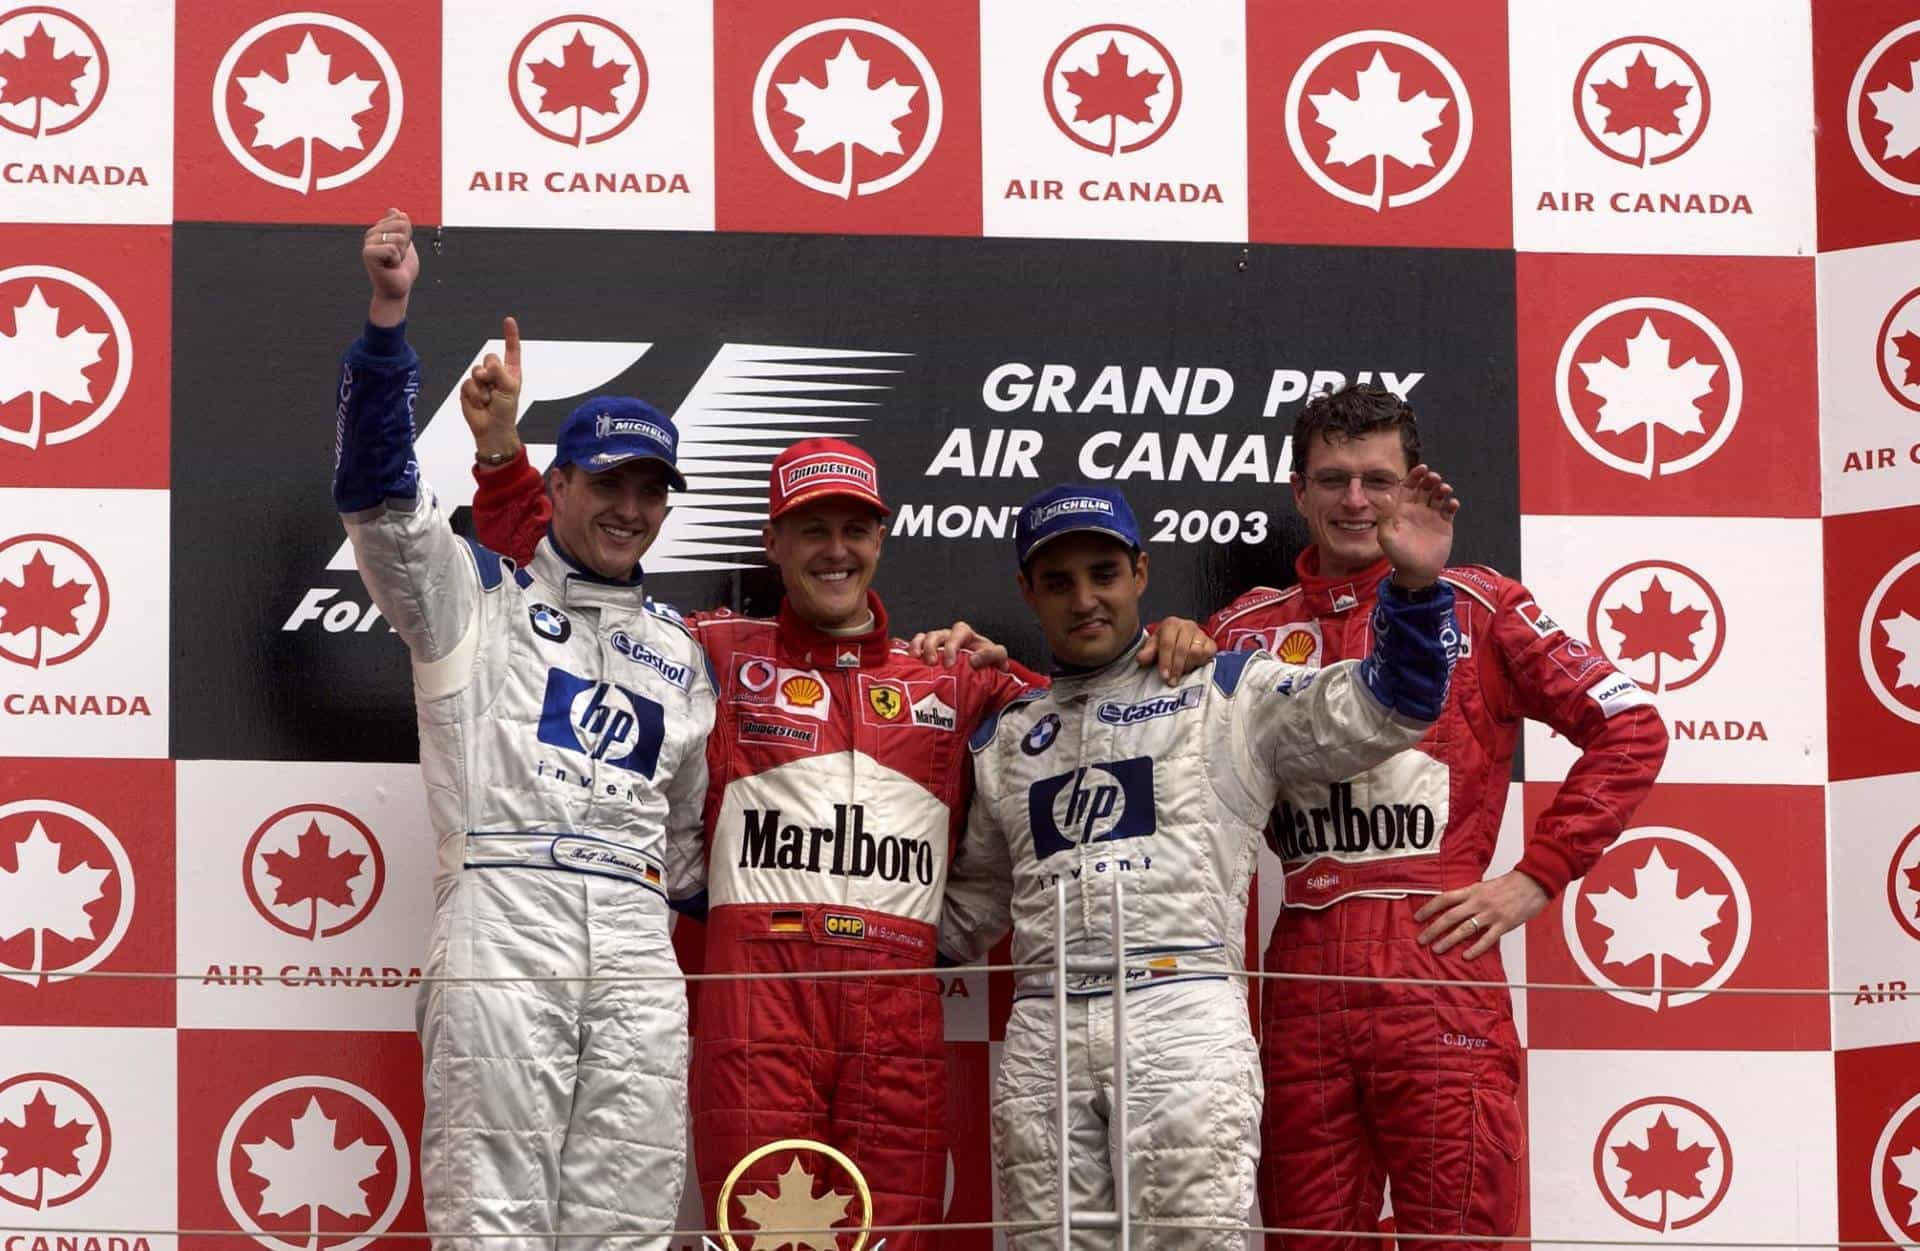 Canadian GP F1 2003 podium Photo Ferrari